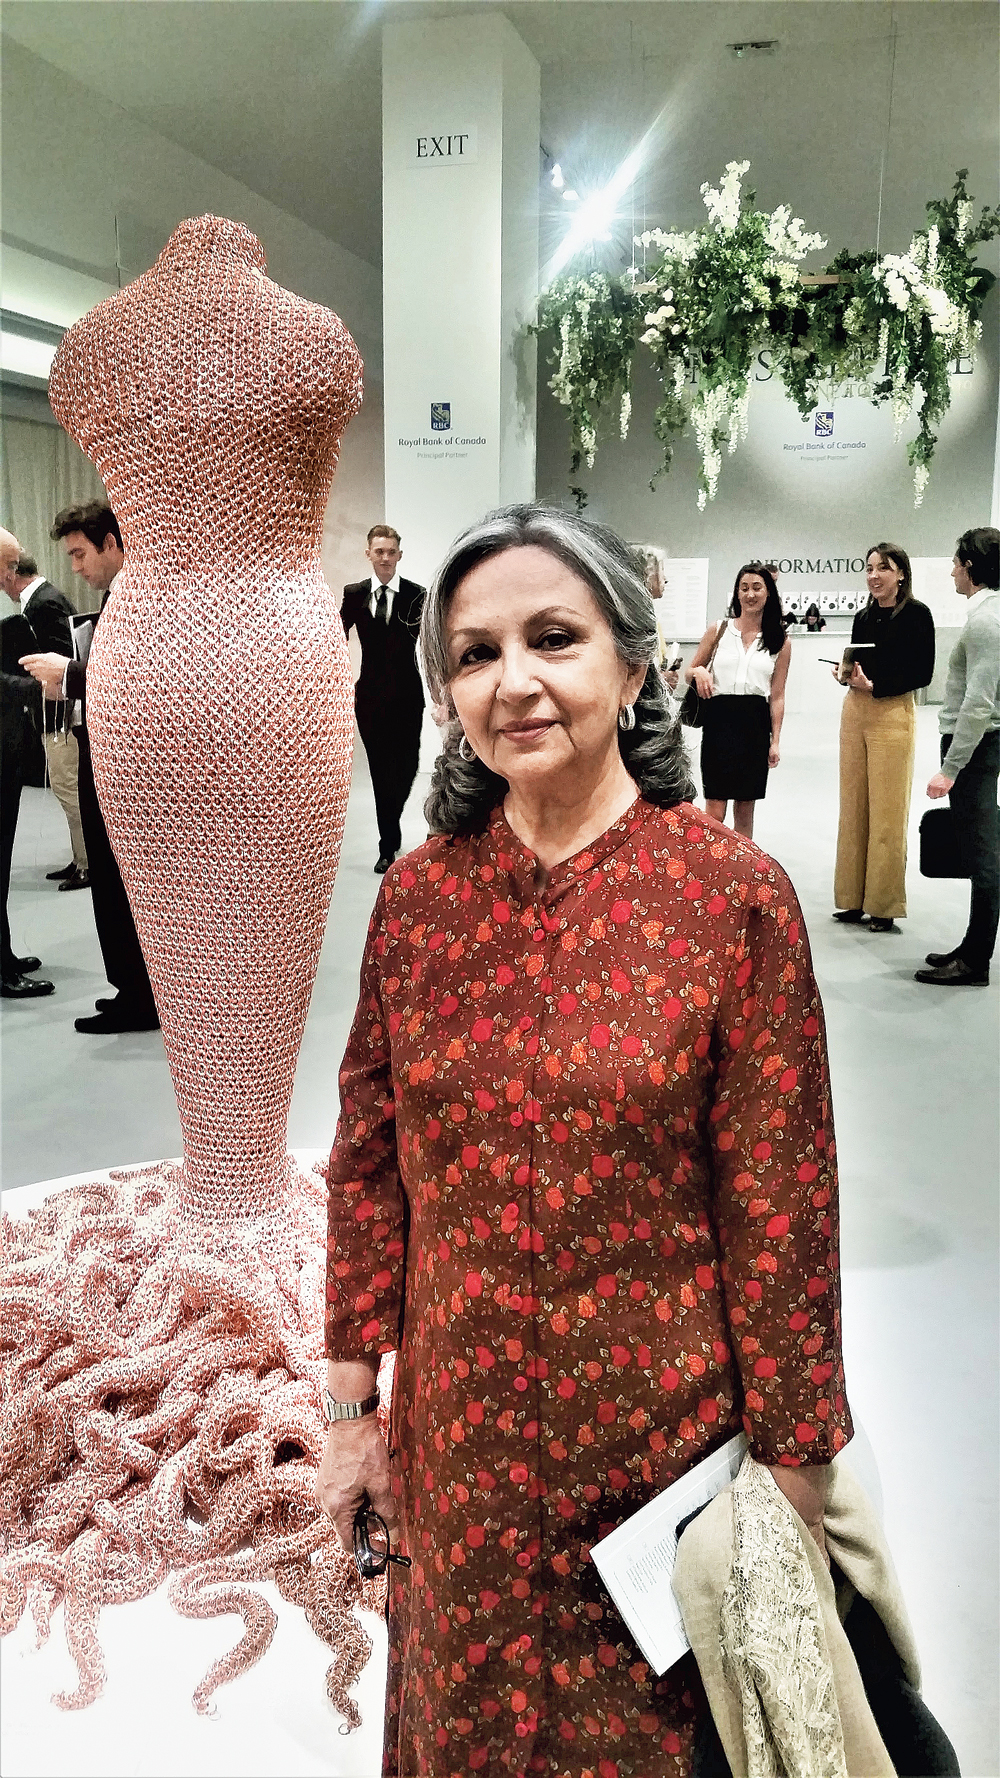 Sharmila Tagore at Masterpiece, an art exhibition in London in June